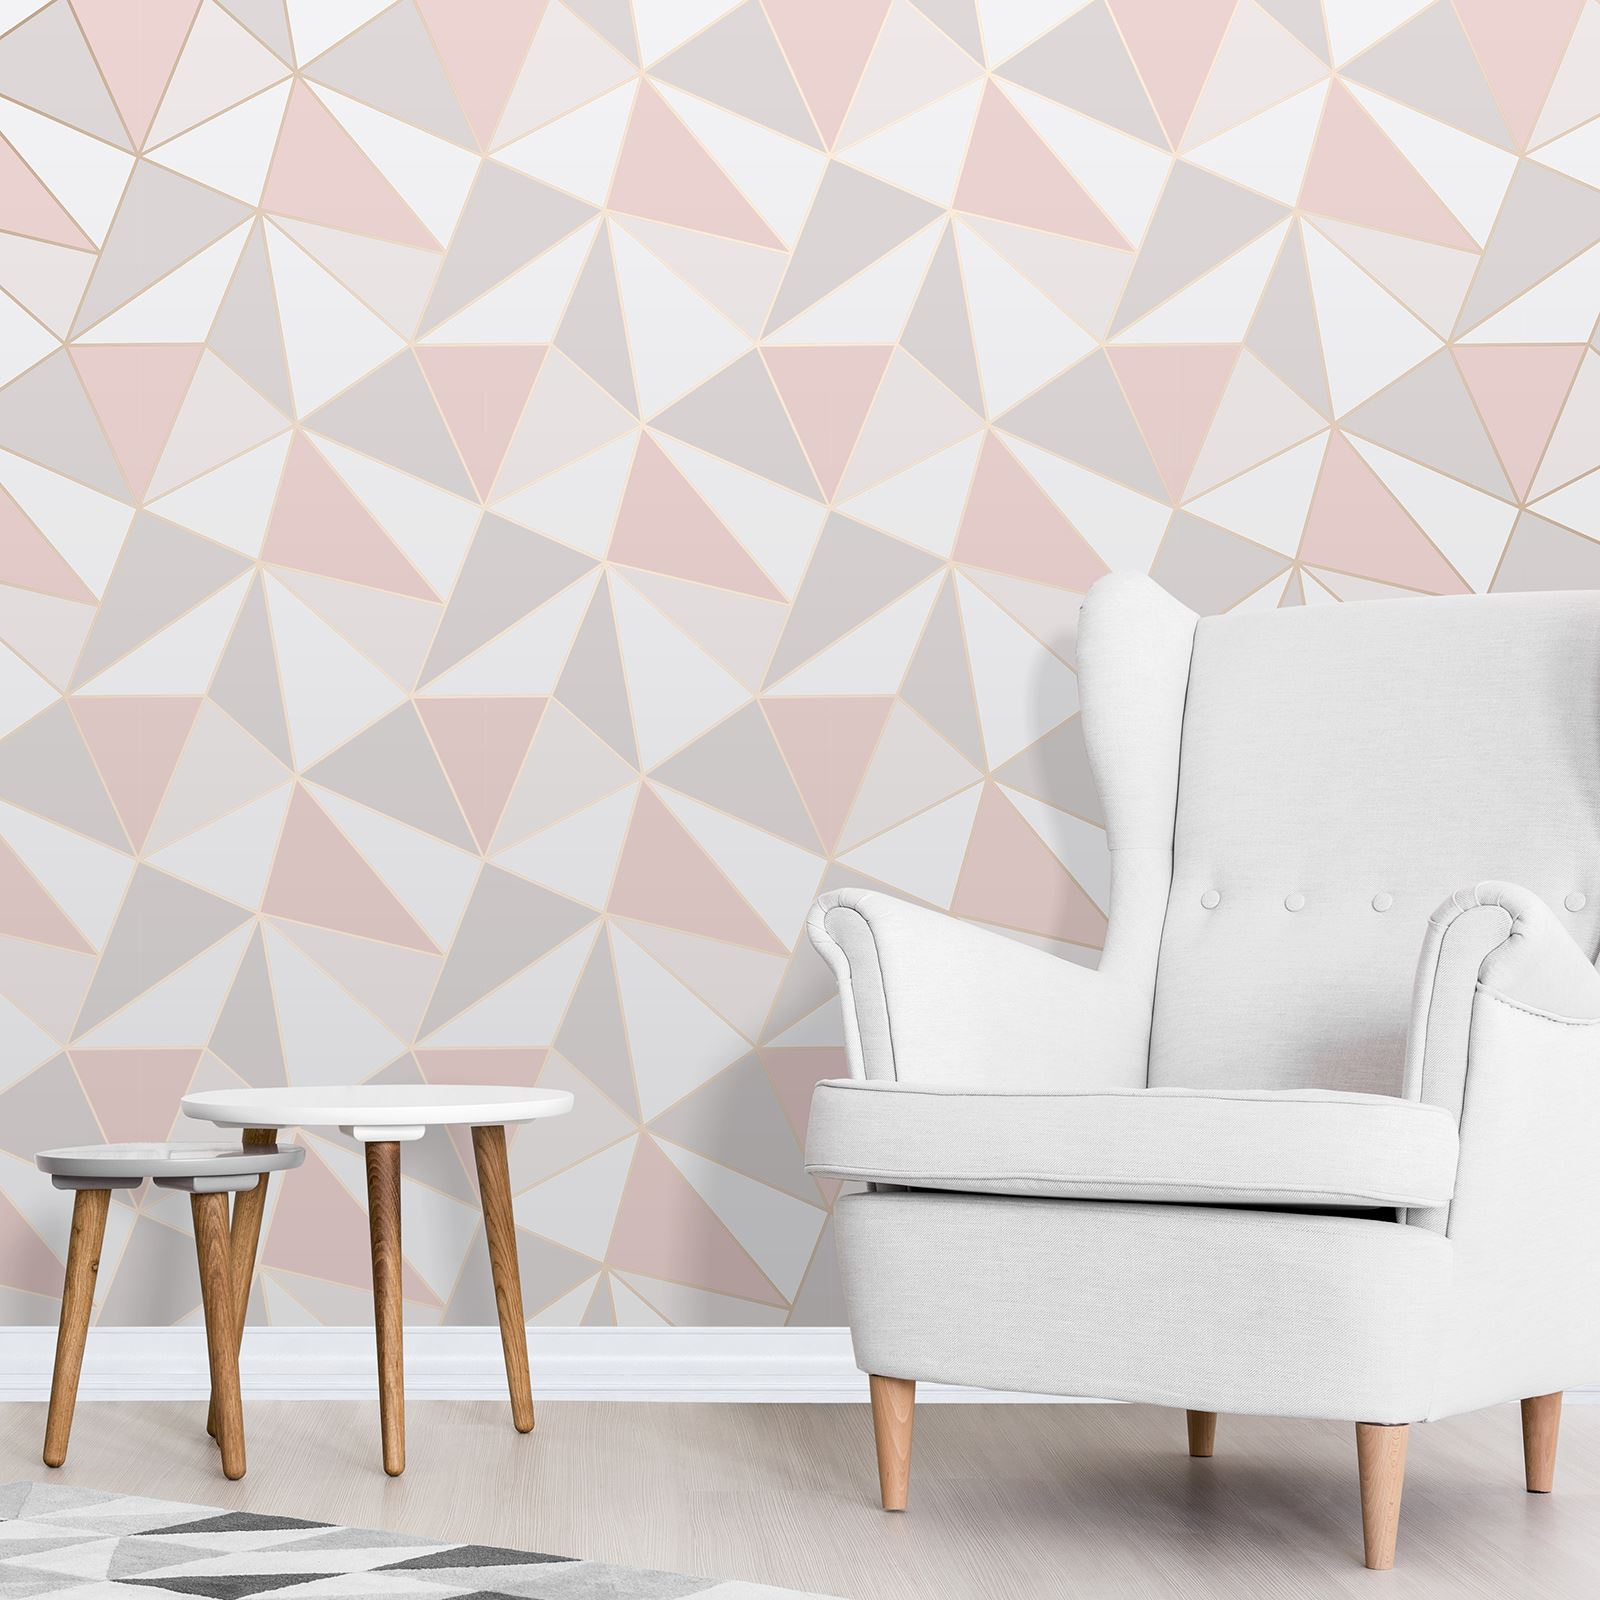 Apex geometric wallpaper rose gold pink fine decor for Decoration maison rose gold